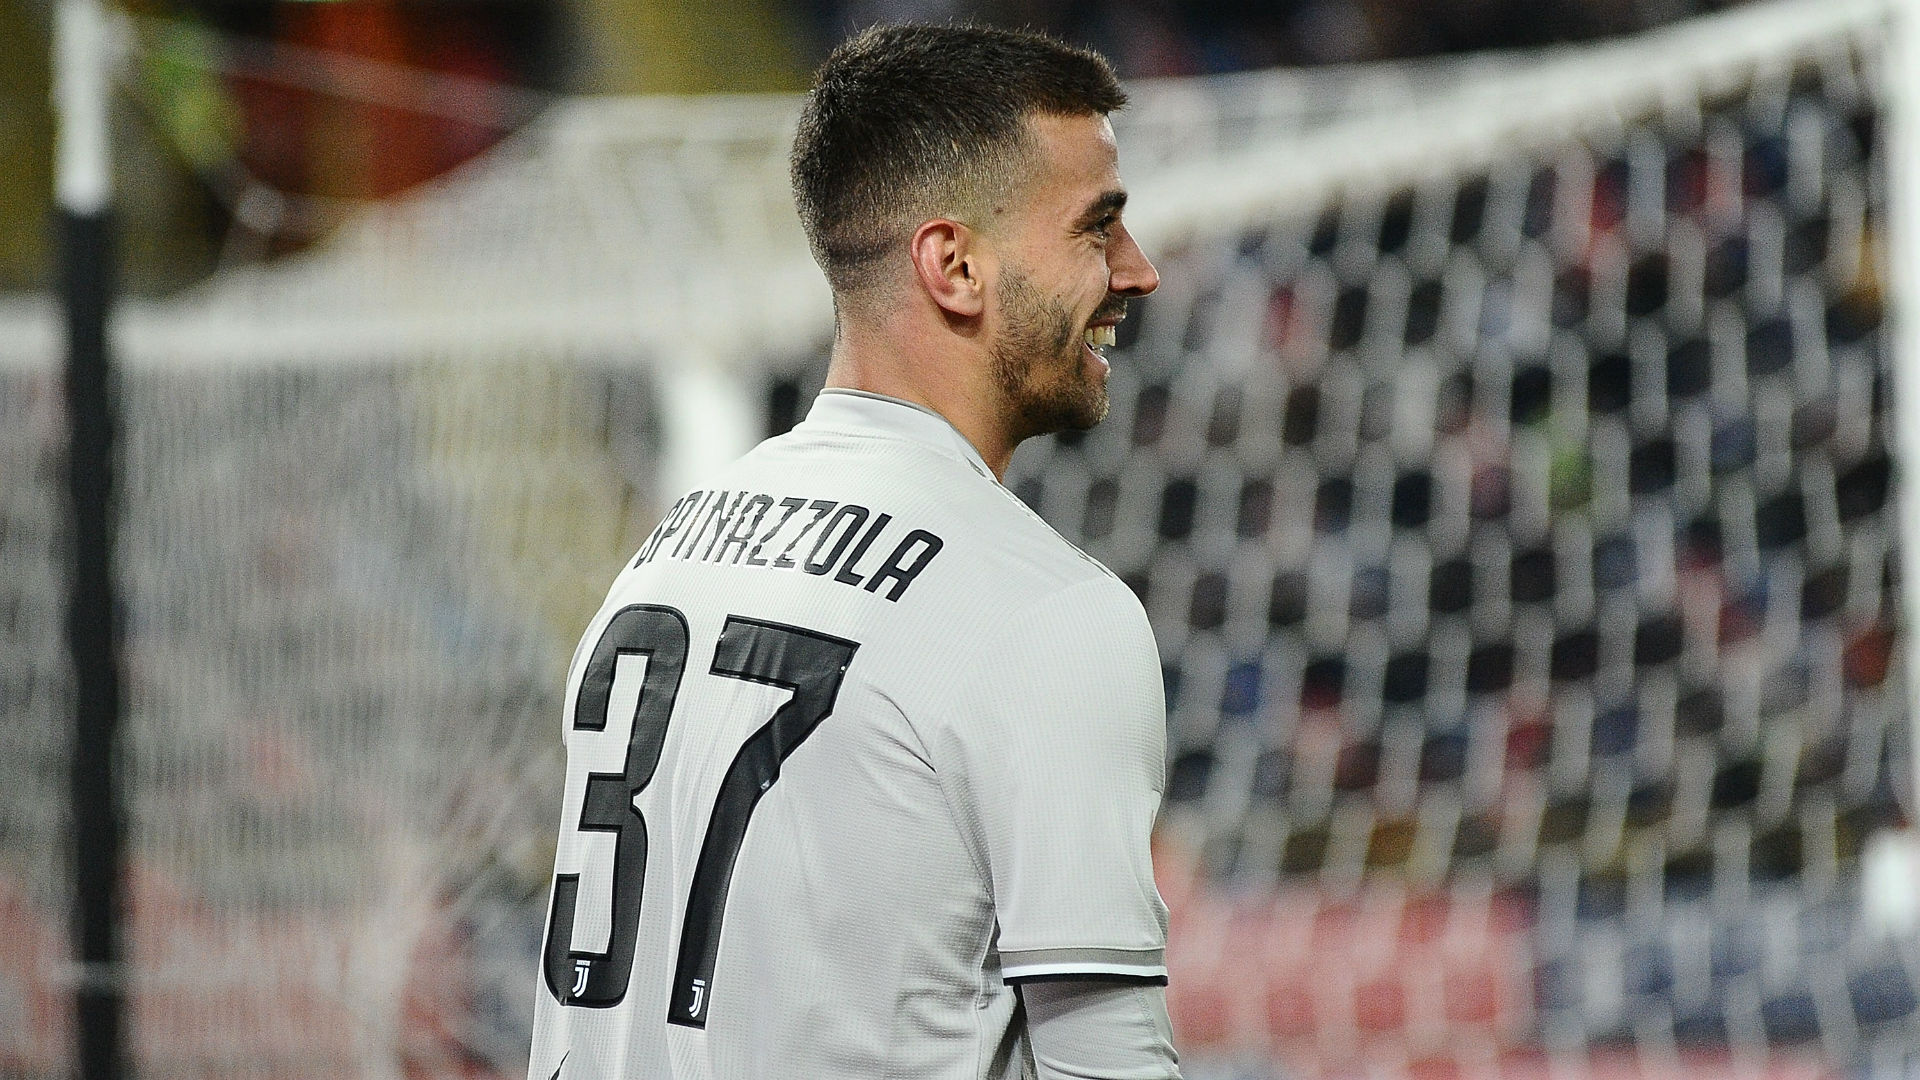 Leonardo Spinazzola made his Juventus debut in Saturday's defeat of Bologna, and Massimiliano Allegri was impressed.